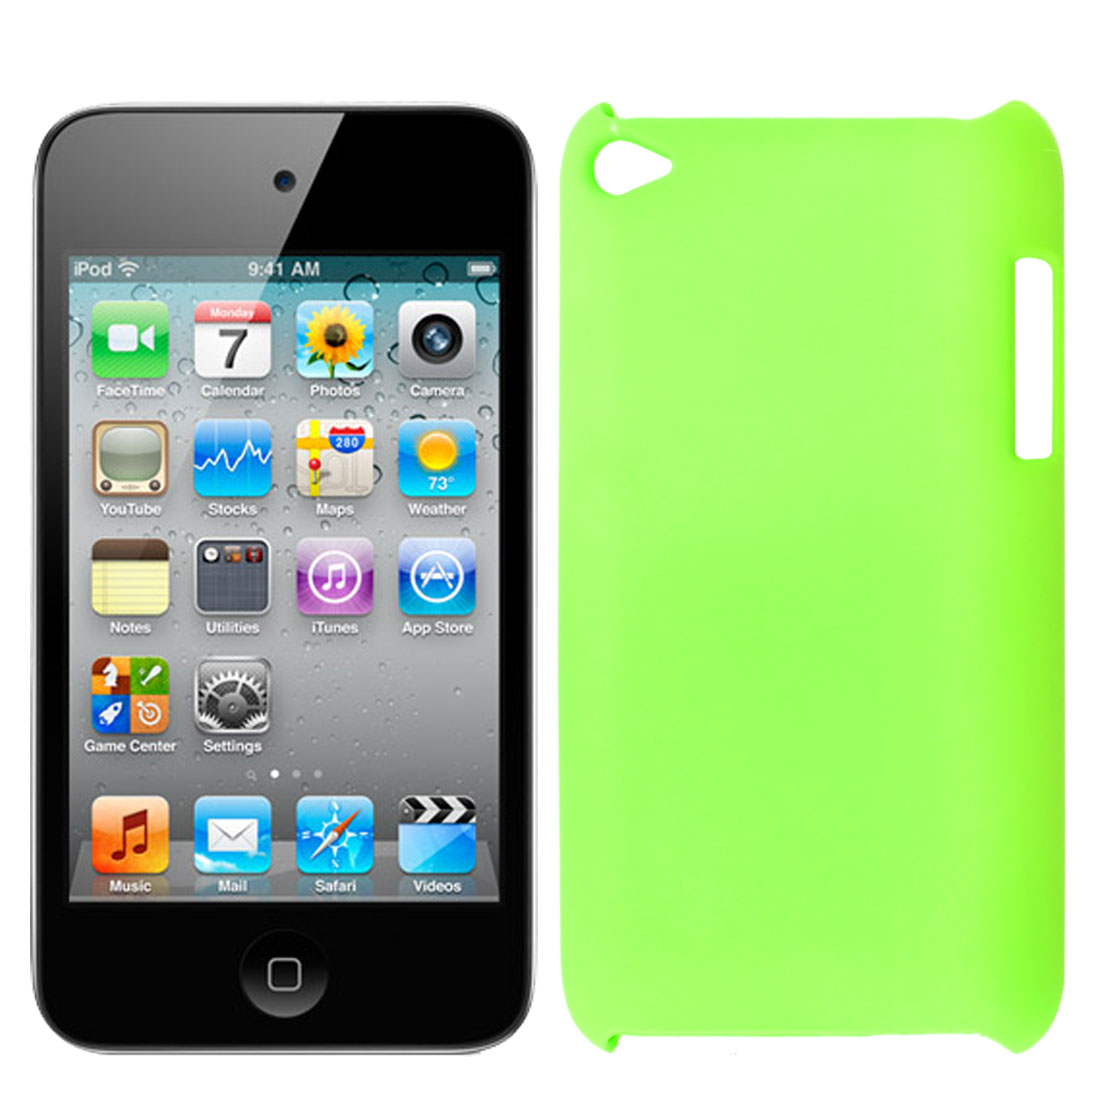 Light Green Rubberized Plastic Back Case Shell Cover for iPod Touch 4